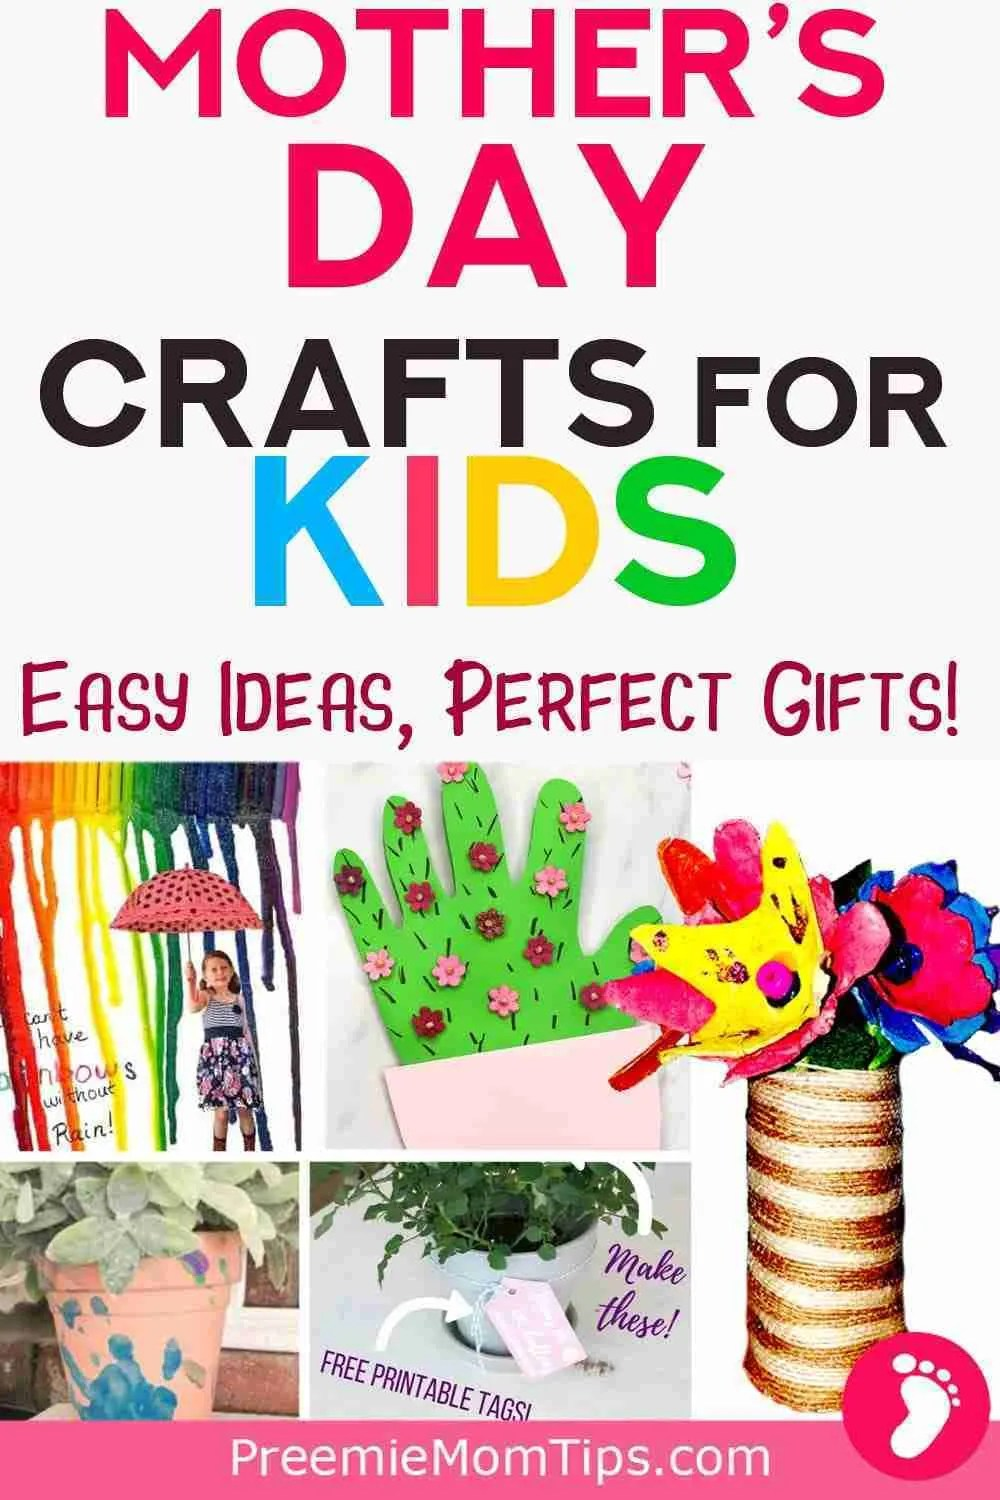 This list of Mother's Day crafts for kids  is easy to make, and you'll get beautiful keepsakes made by your own child!